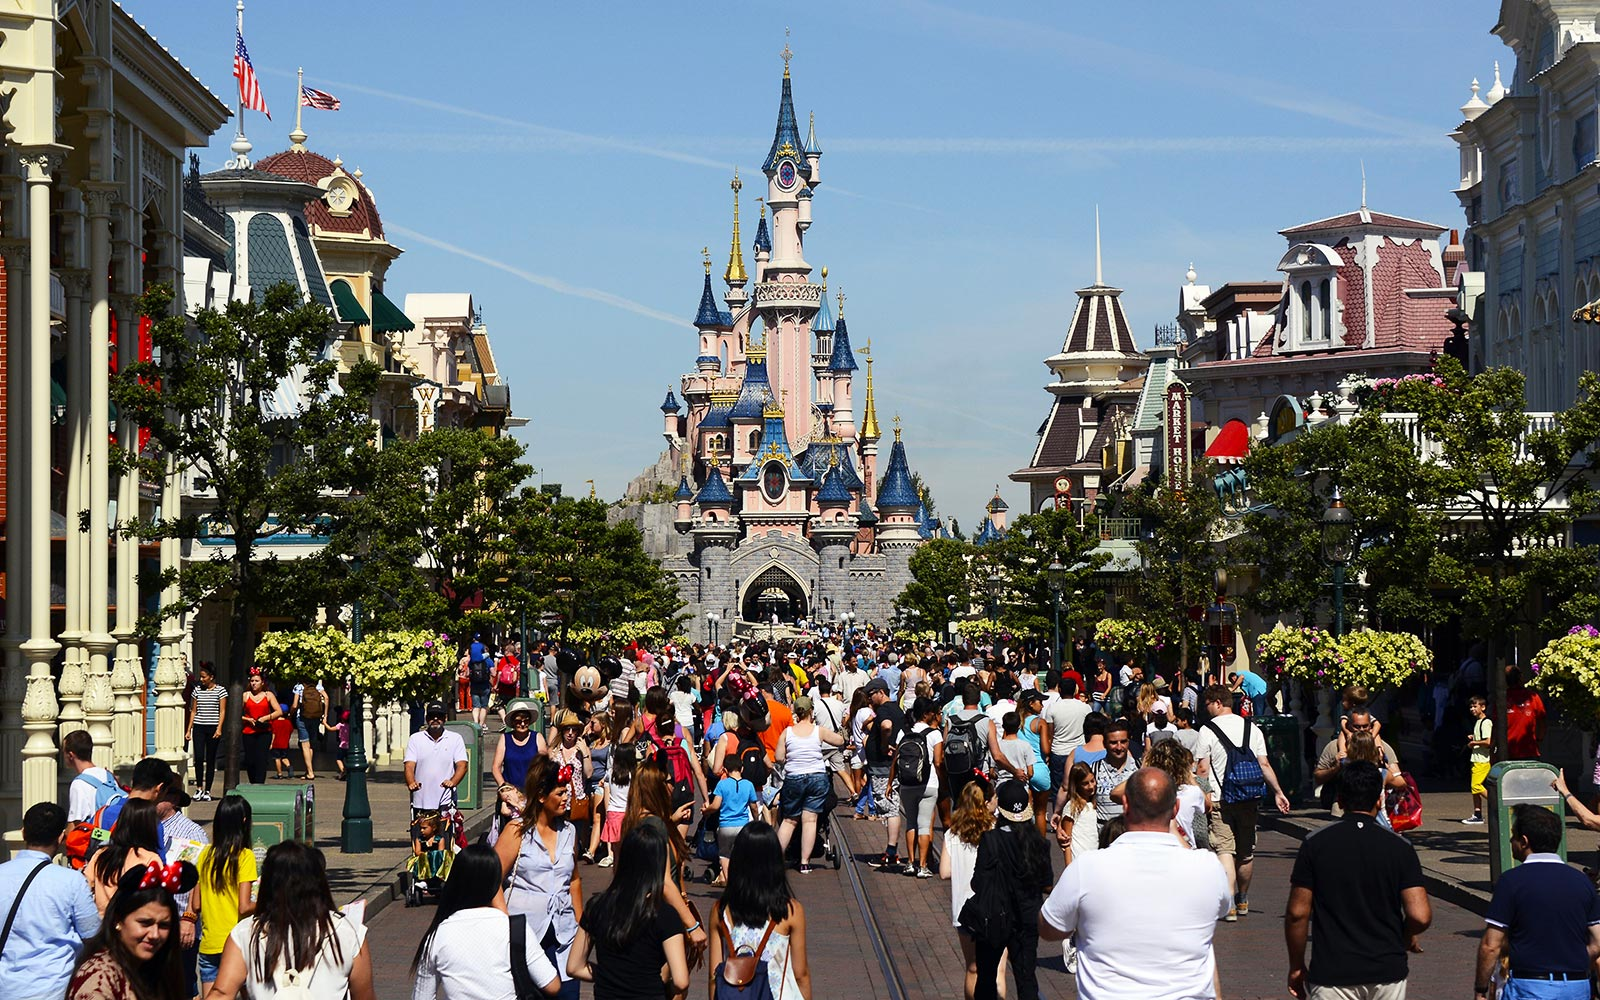 Disneyland Paris' $2.5 billion Expansion Will Include 'Star Wars,' Marvel and 'Frozen'